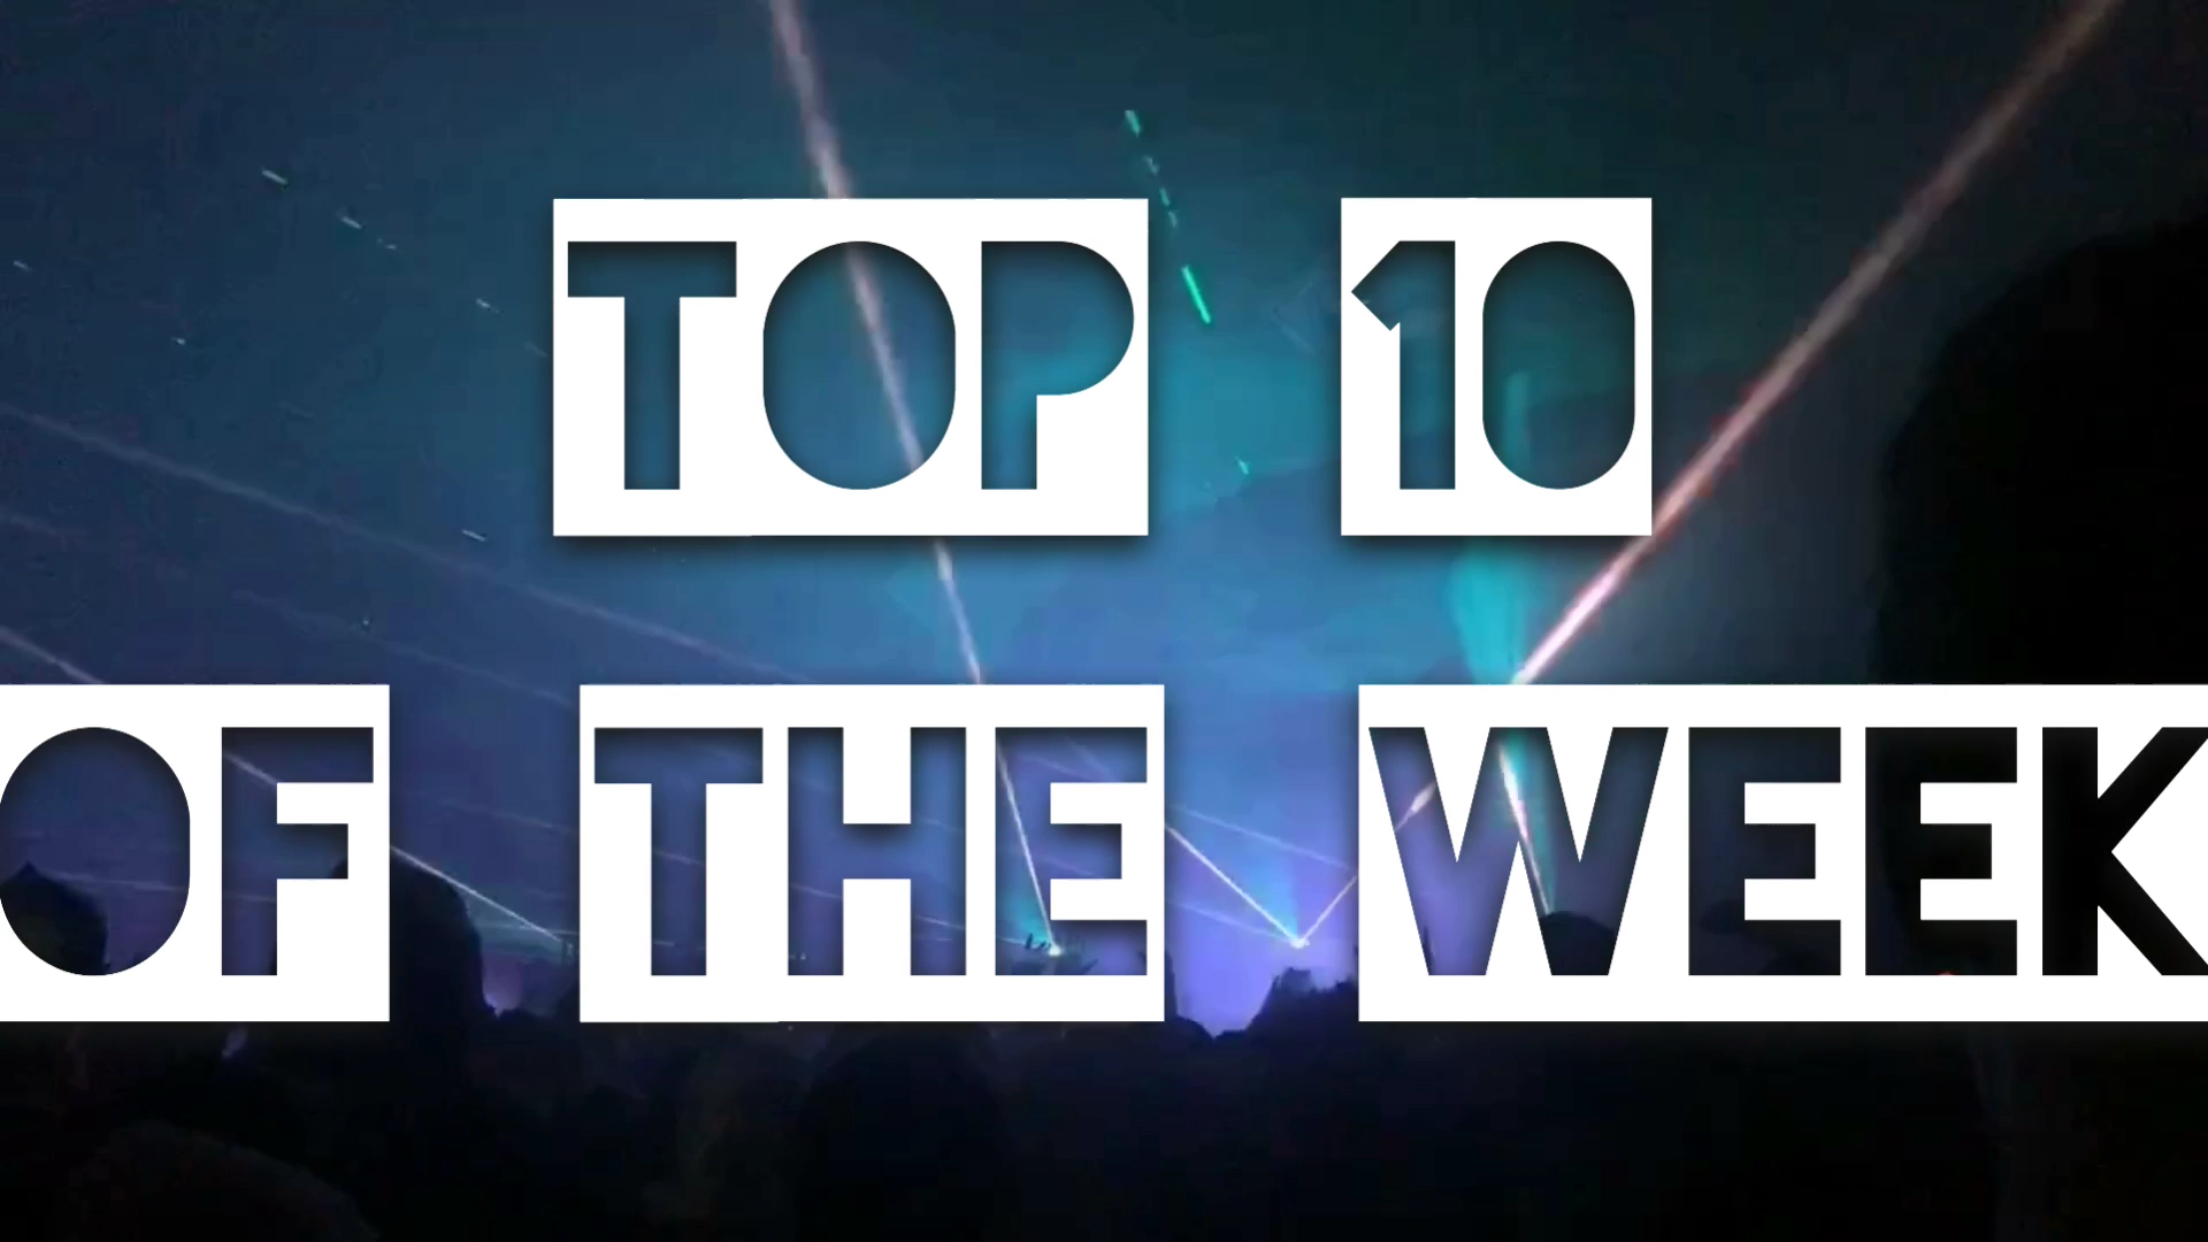 top 10 electronic songs of may 2018 Captone Scala and Kolacny Brothers the royals season finale on E! Tiesto Preme Post Malone Clean Bandit Demi Lovato Loud luxury Dyson Chris Lake Marco LysDJ Sliink Zak Leever Dillon Francis Knife Party Lemaitre